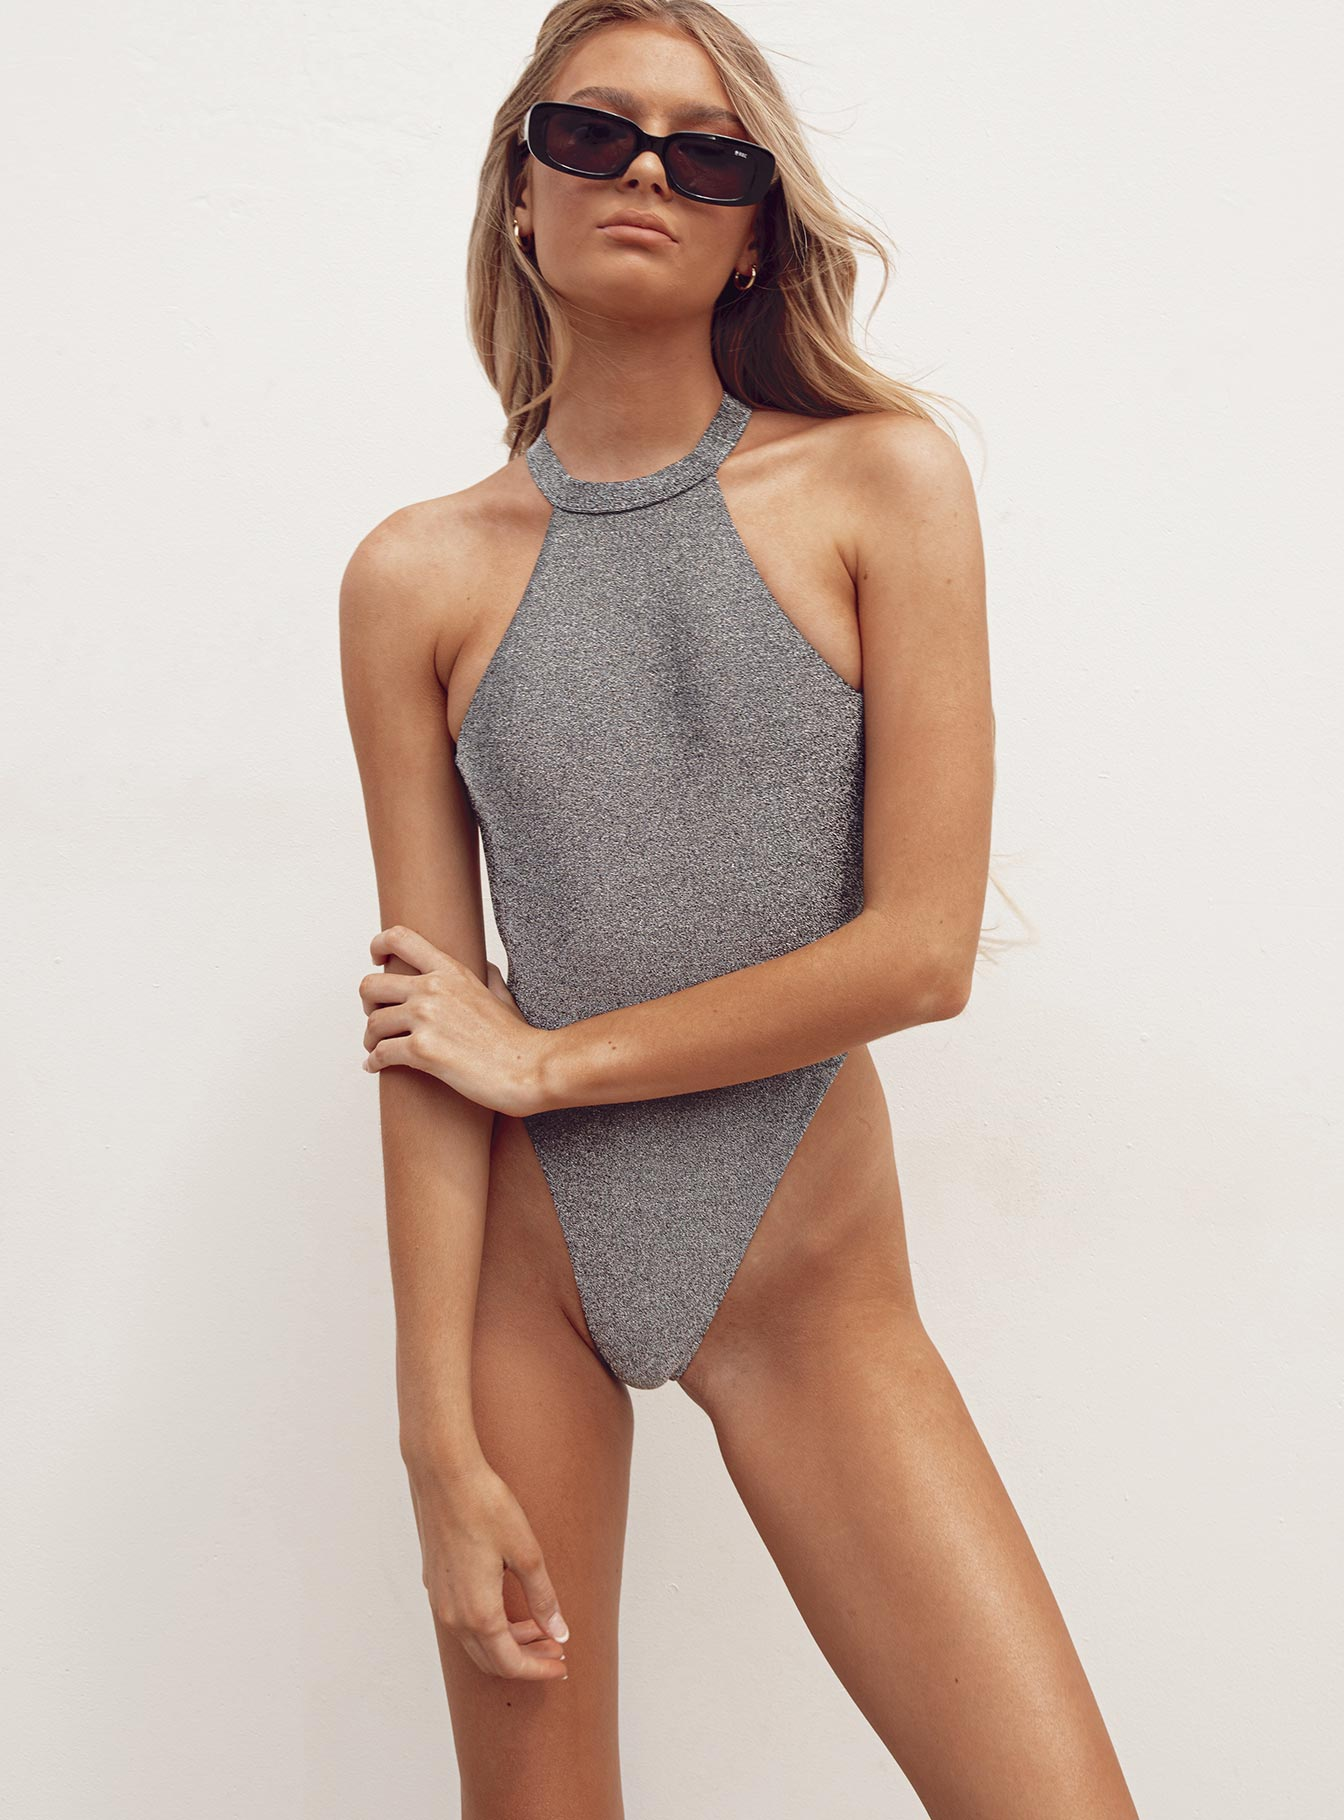 TWIIN Prophetic Halter One Piece